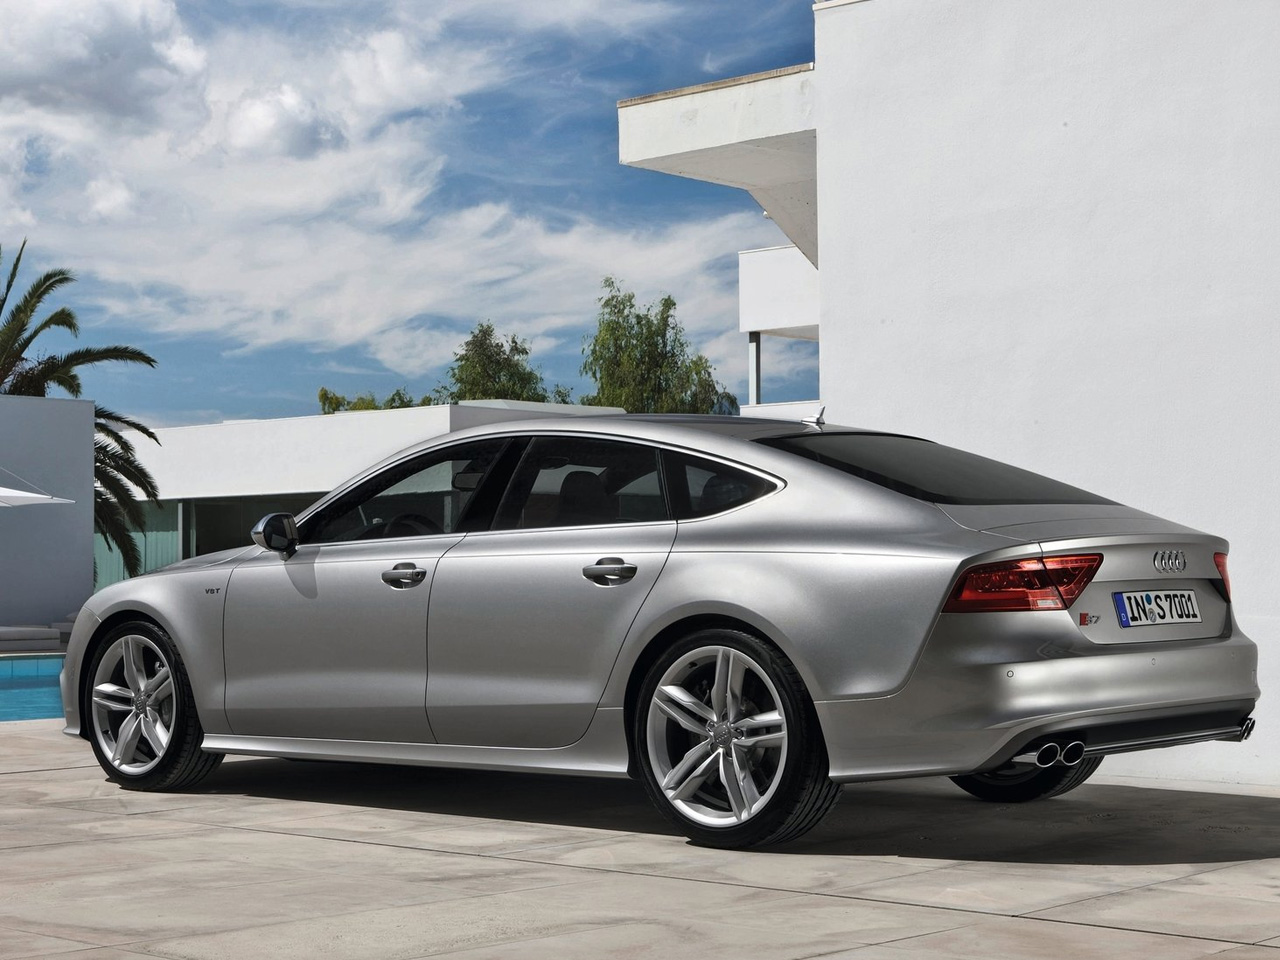 Build you very own S7 here: http://www.audiusa.com/models/audi-s7 ...